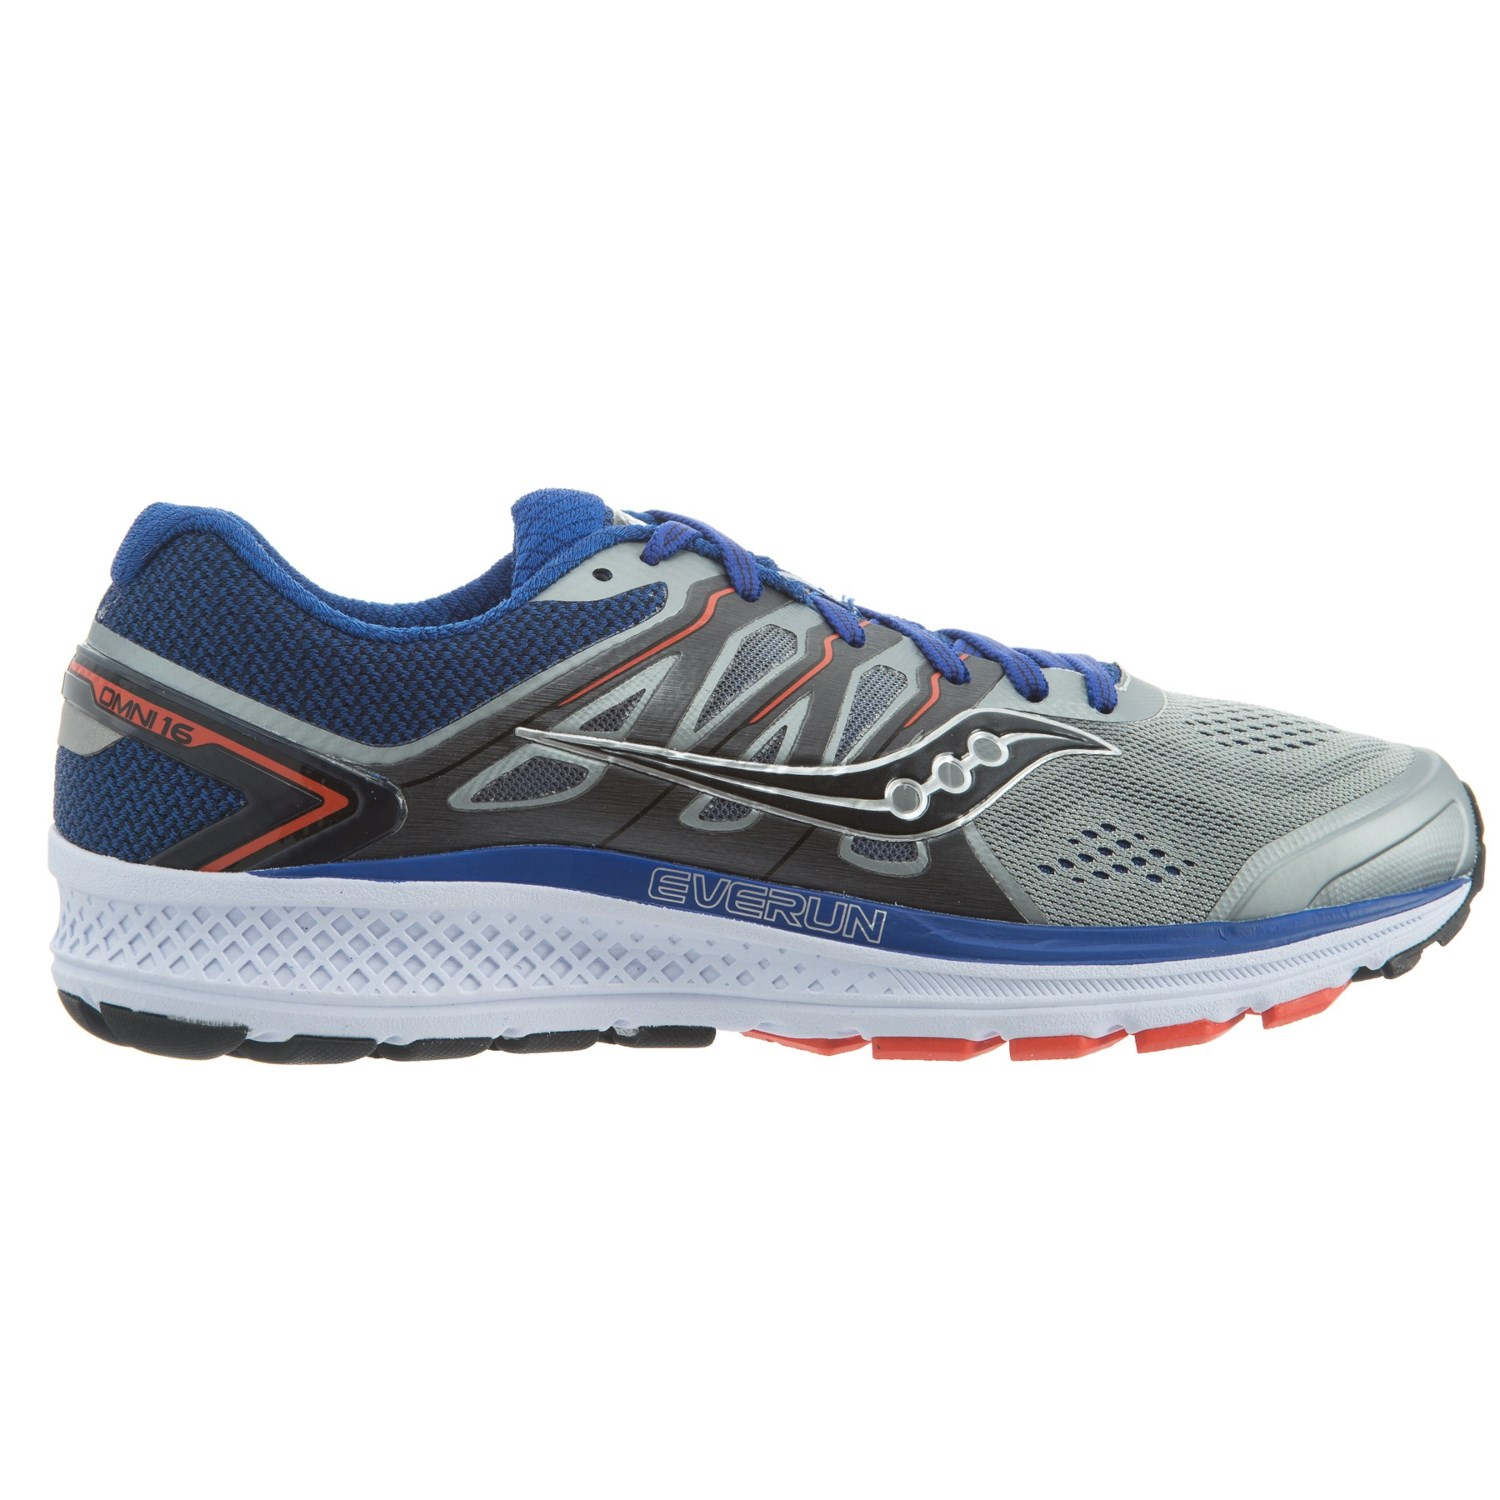 05630a9d4ce8 Saucony Omni 16 Running Shoes (For Men) - Save 46%